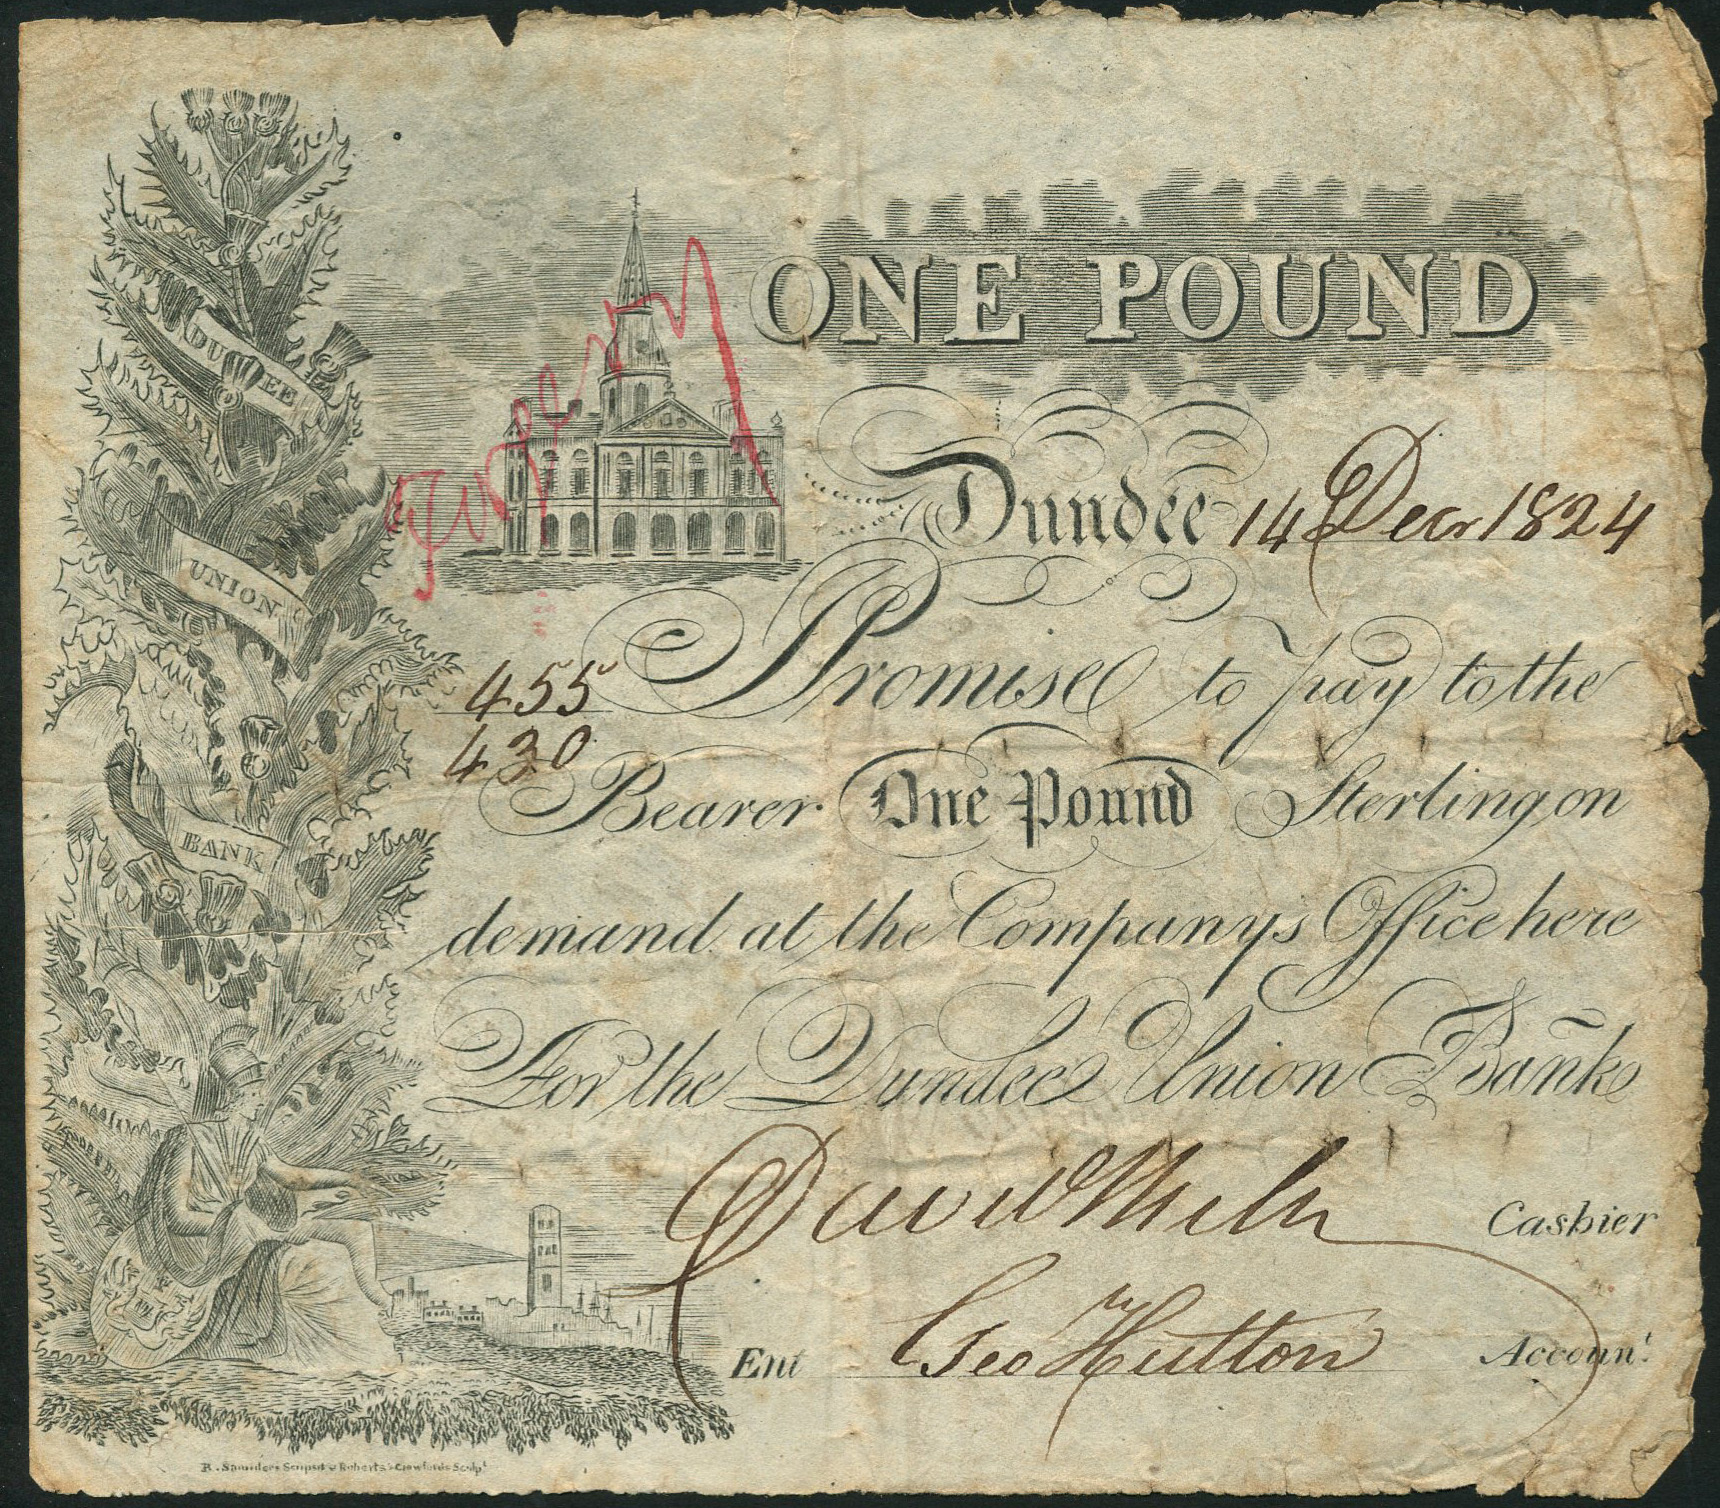 Dundee Union Bank one pound note, a forgery which was produced in or around 1824